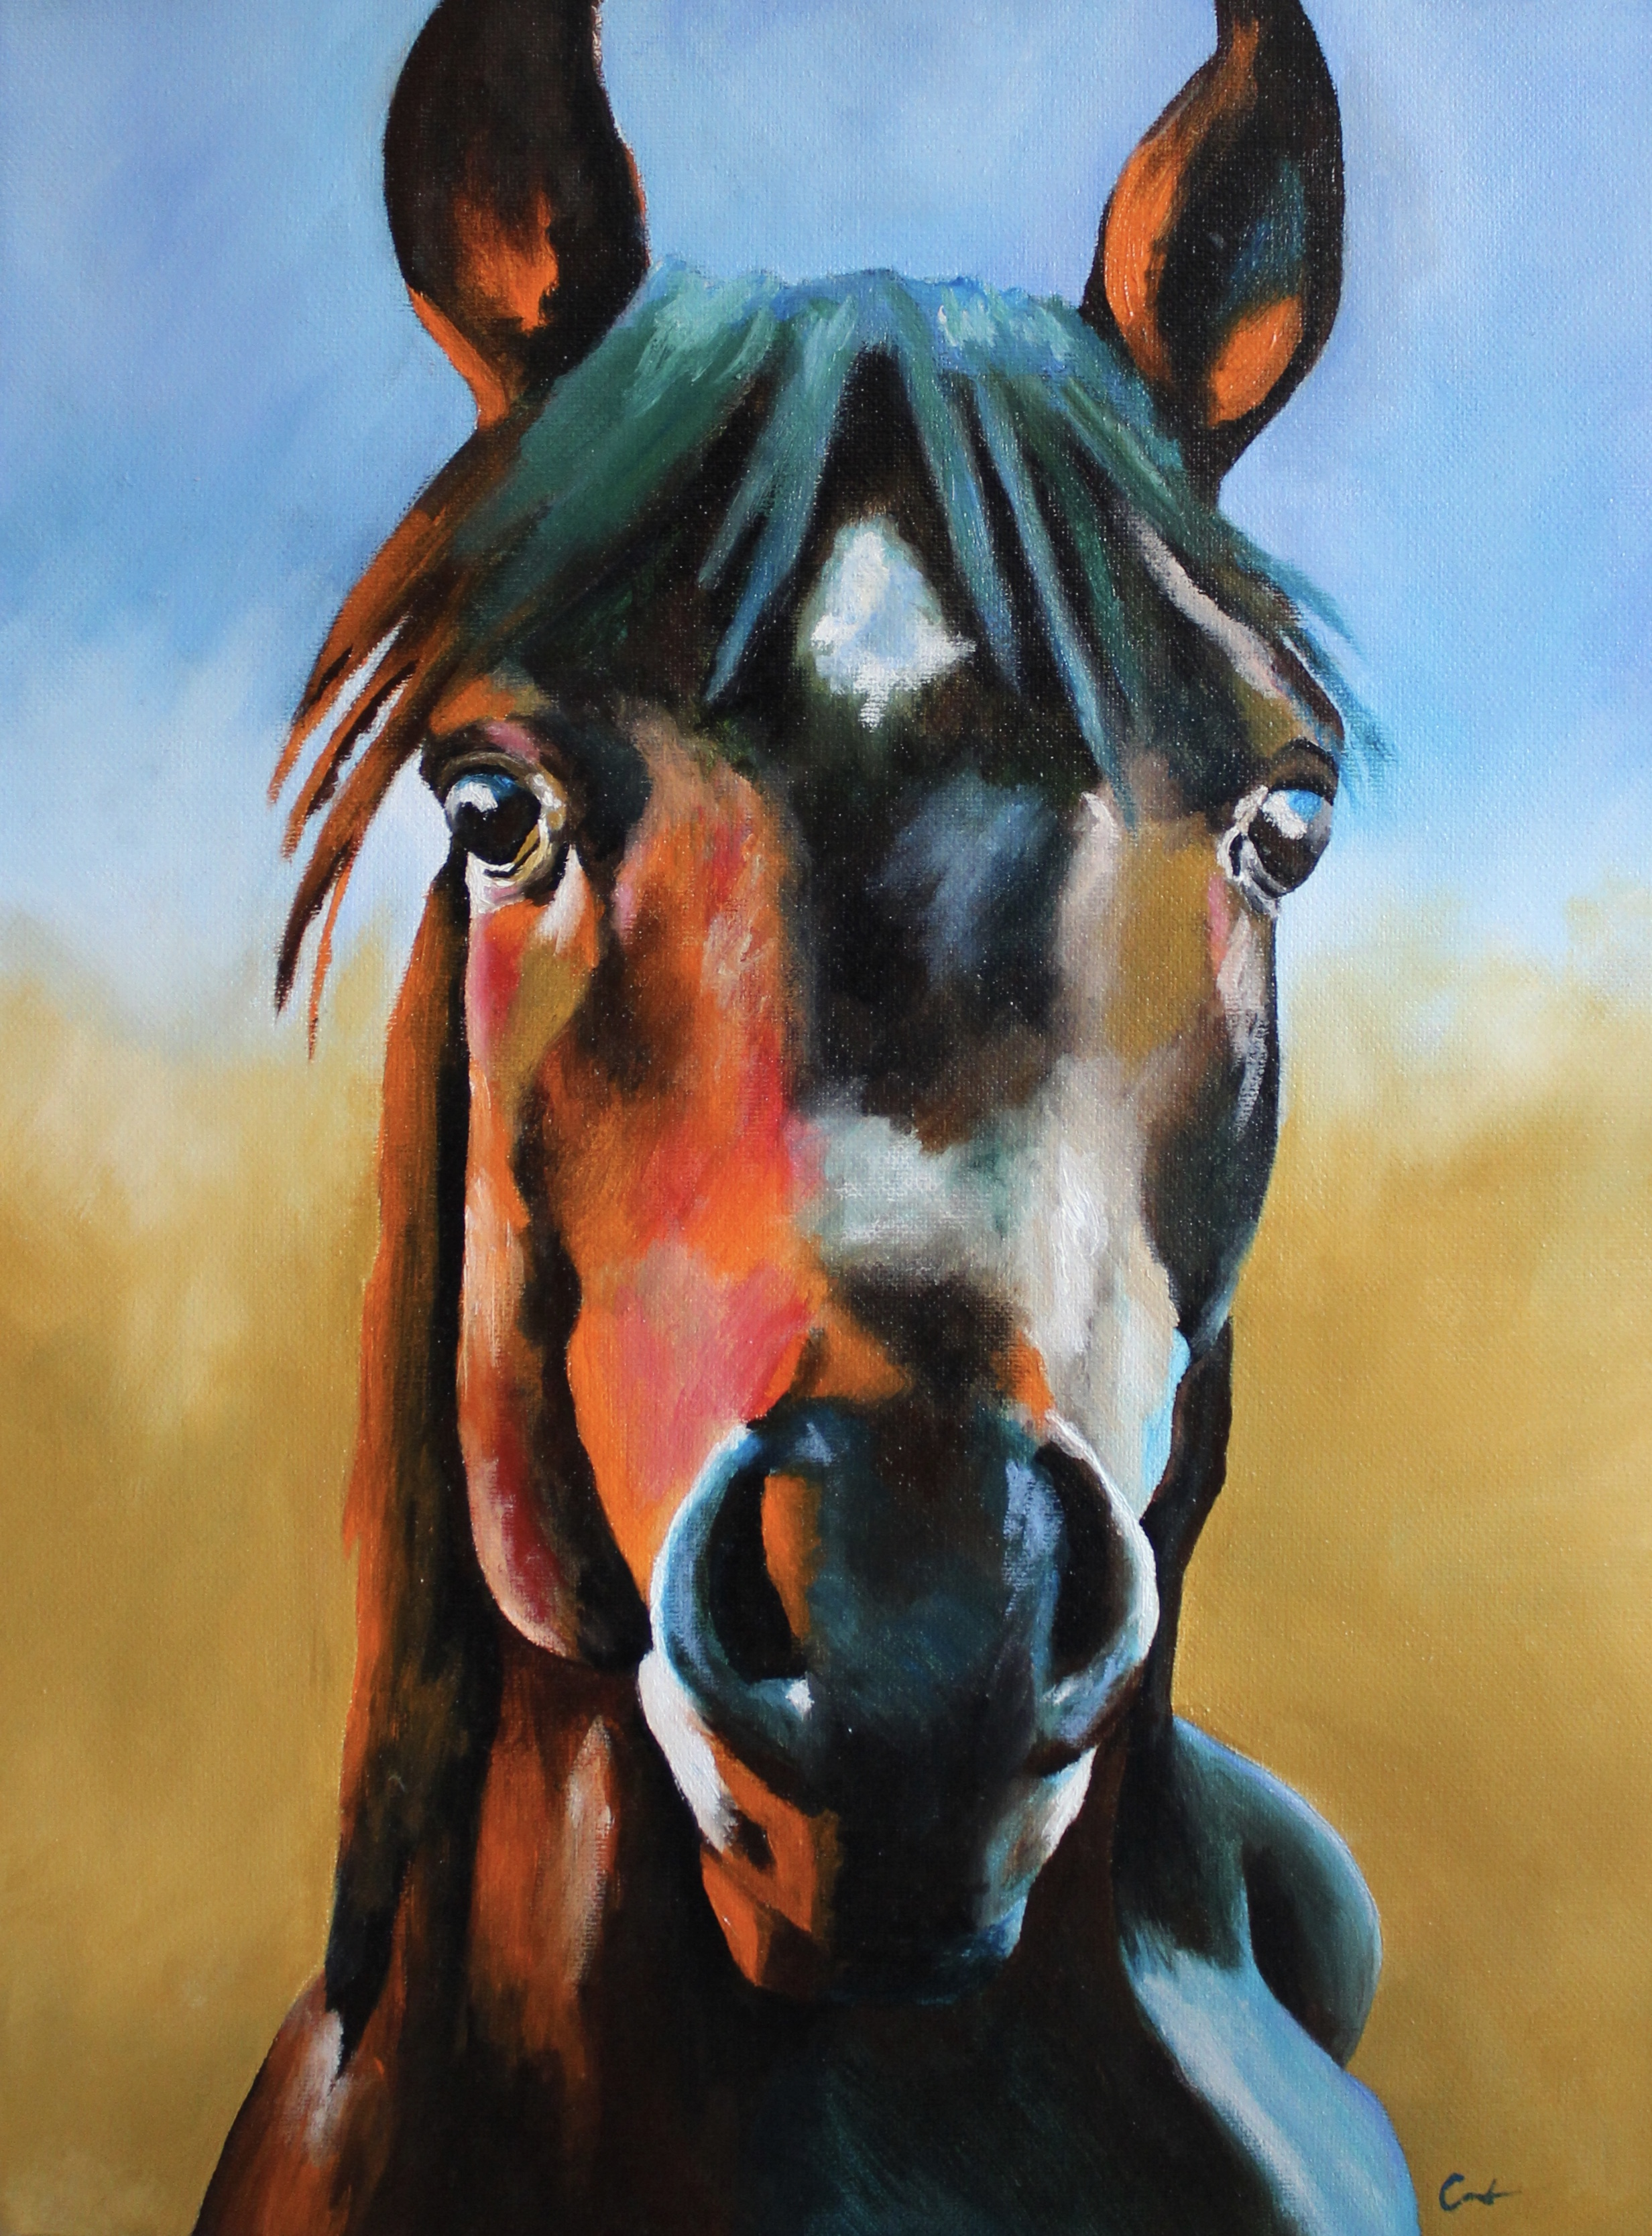 Abstract Horse Oil Painting // 12 x 16 - 2019